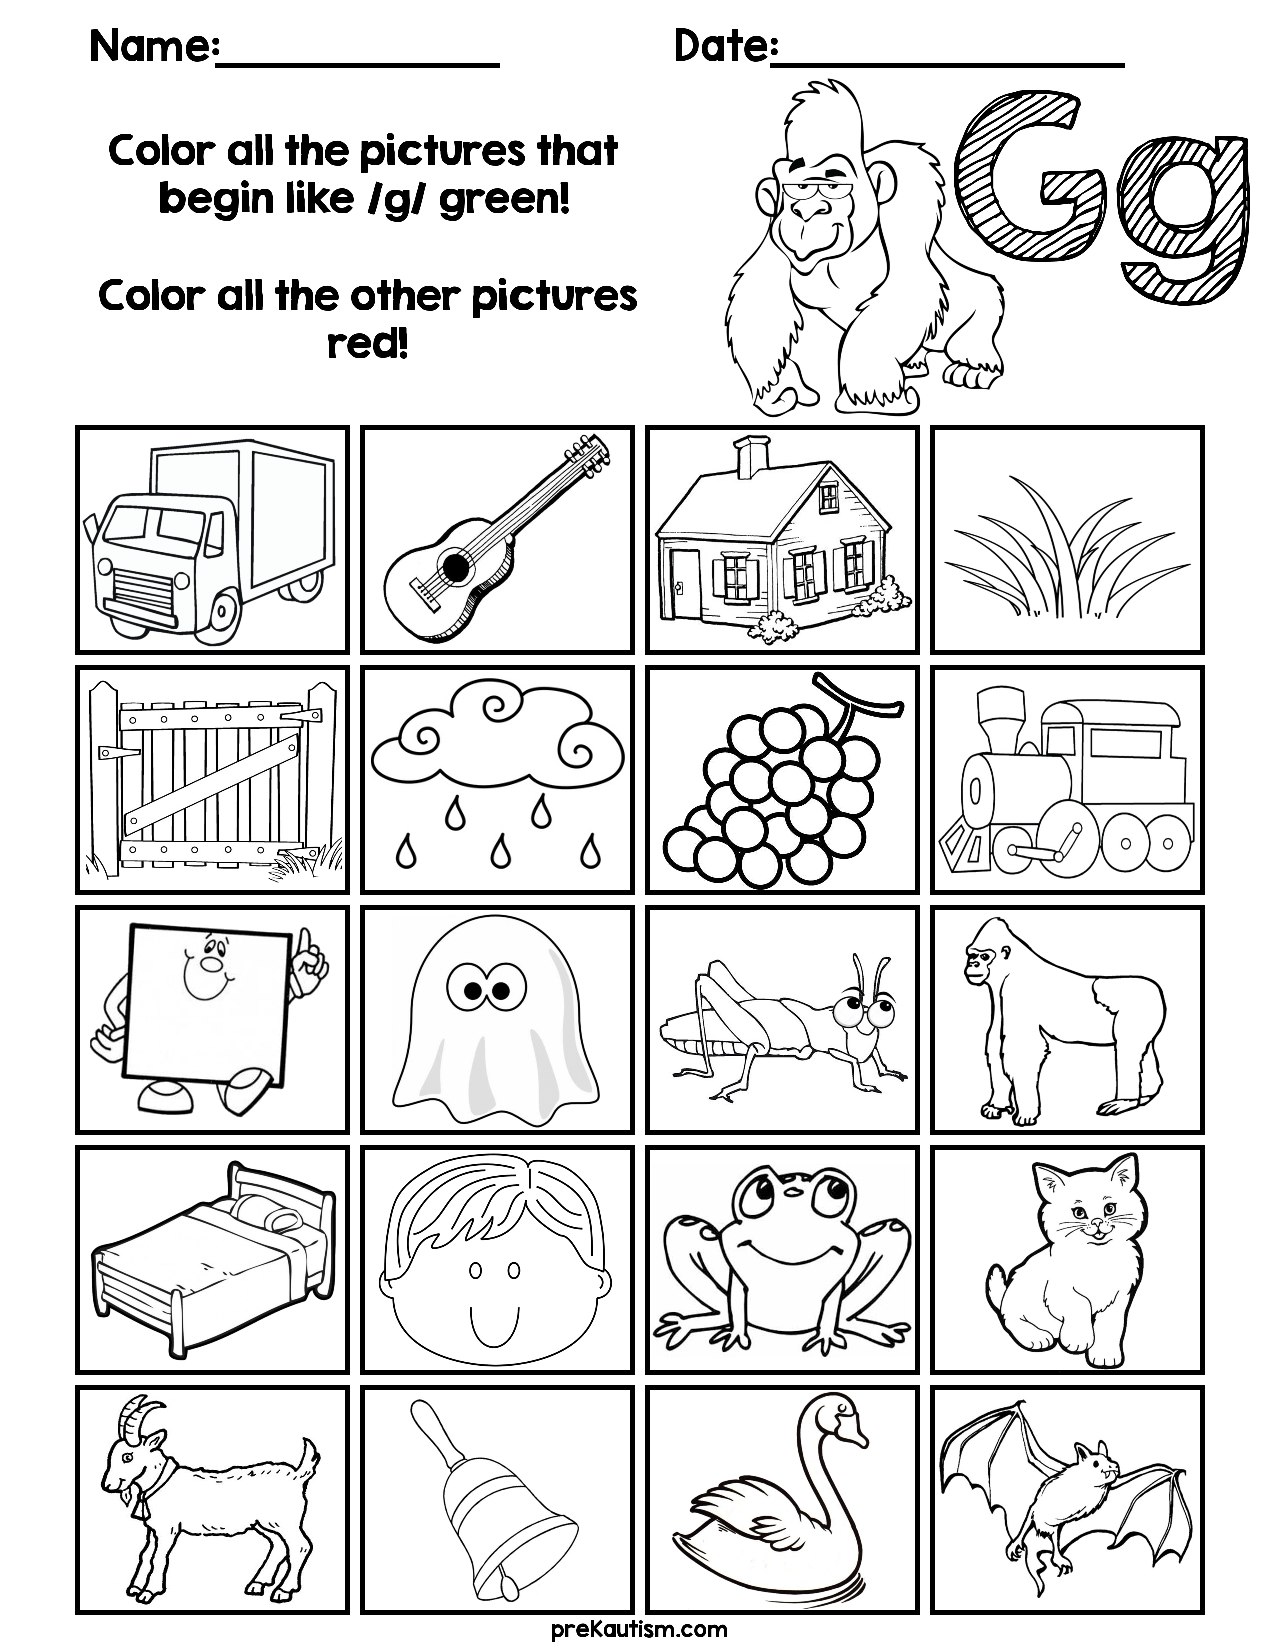 Find Color Consonants Worksheets Kindergarten Math Worksheets Phonics Worksheets Grade R Worksheets